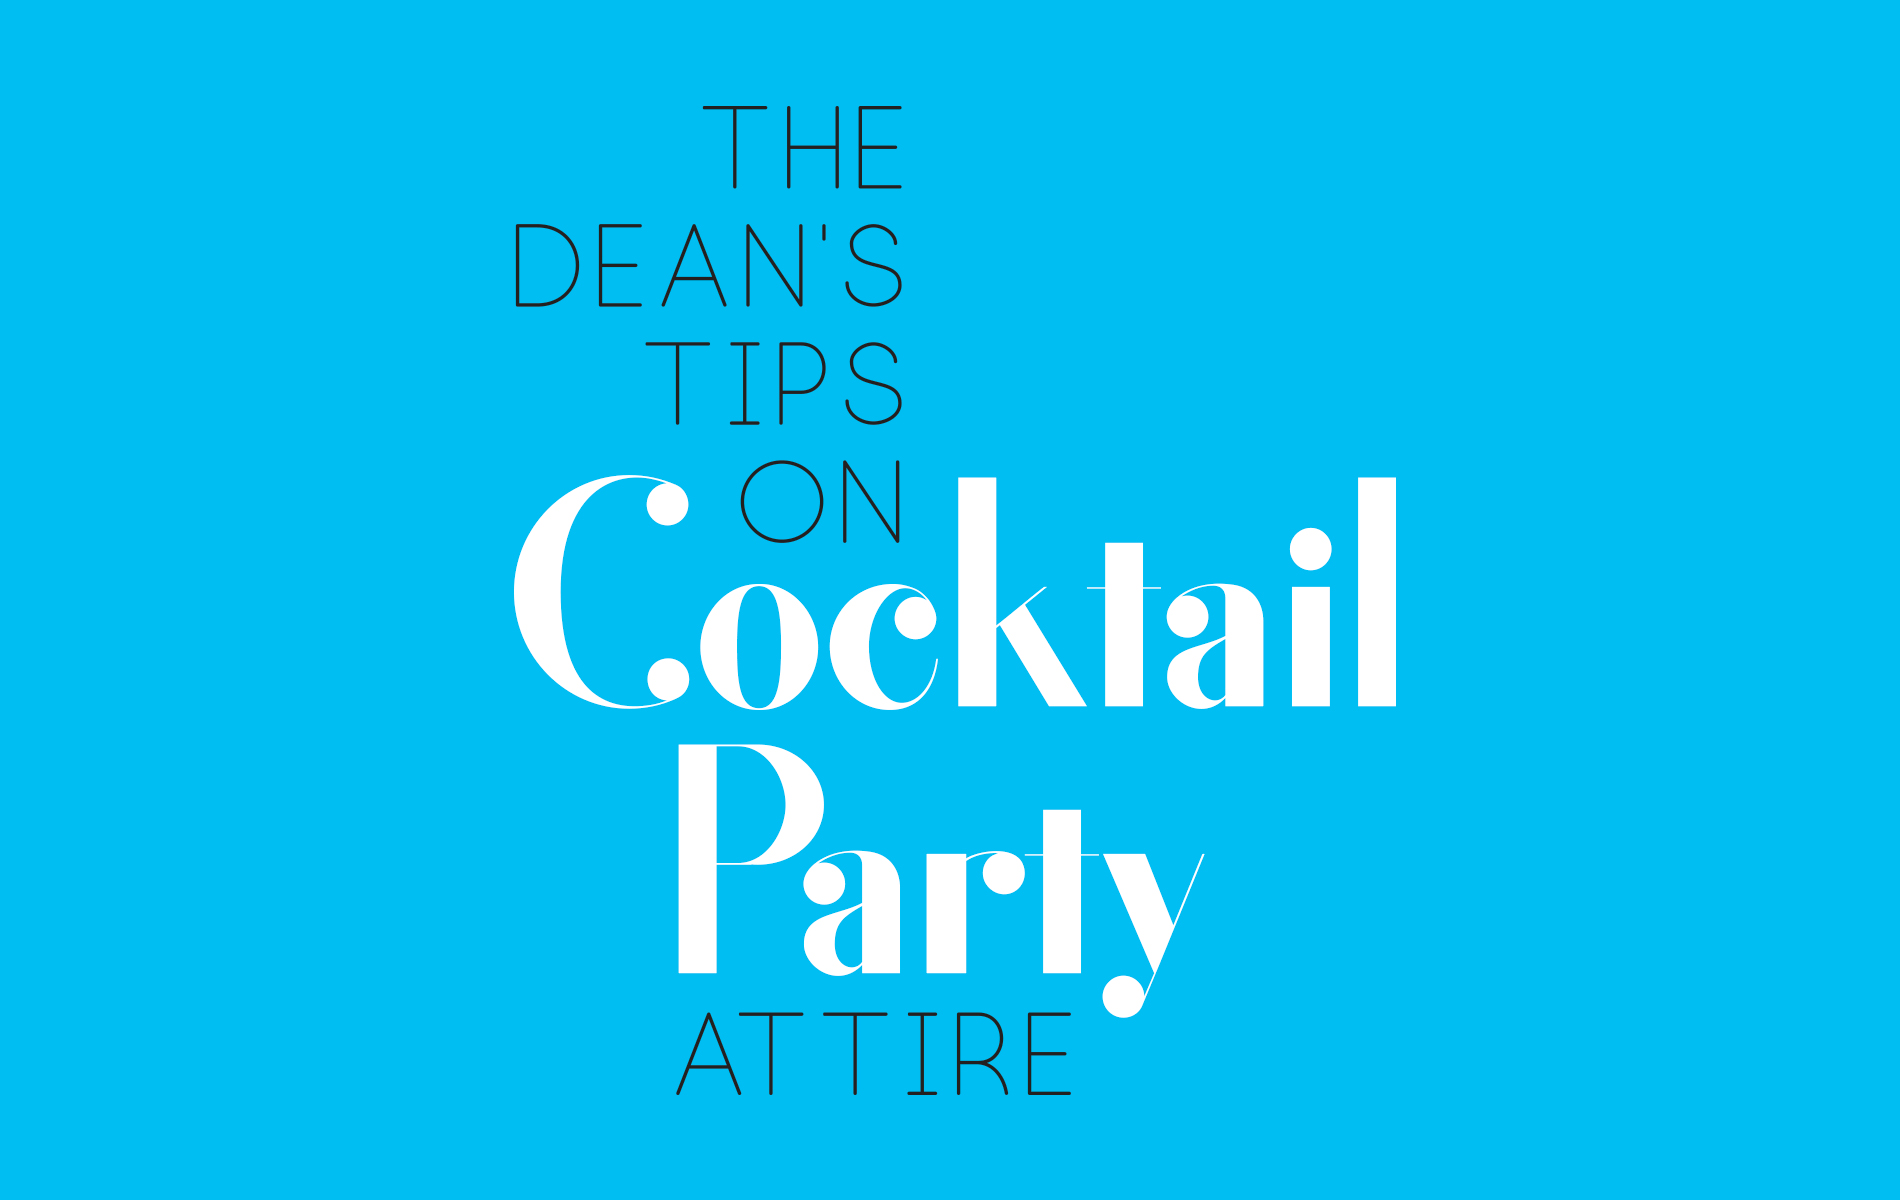 The Dean's Tips on Cocktail Party Attire